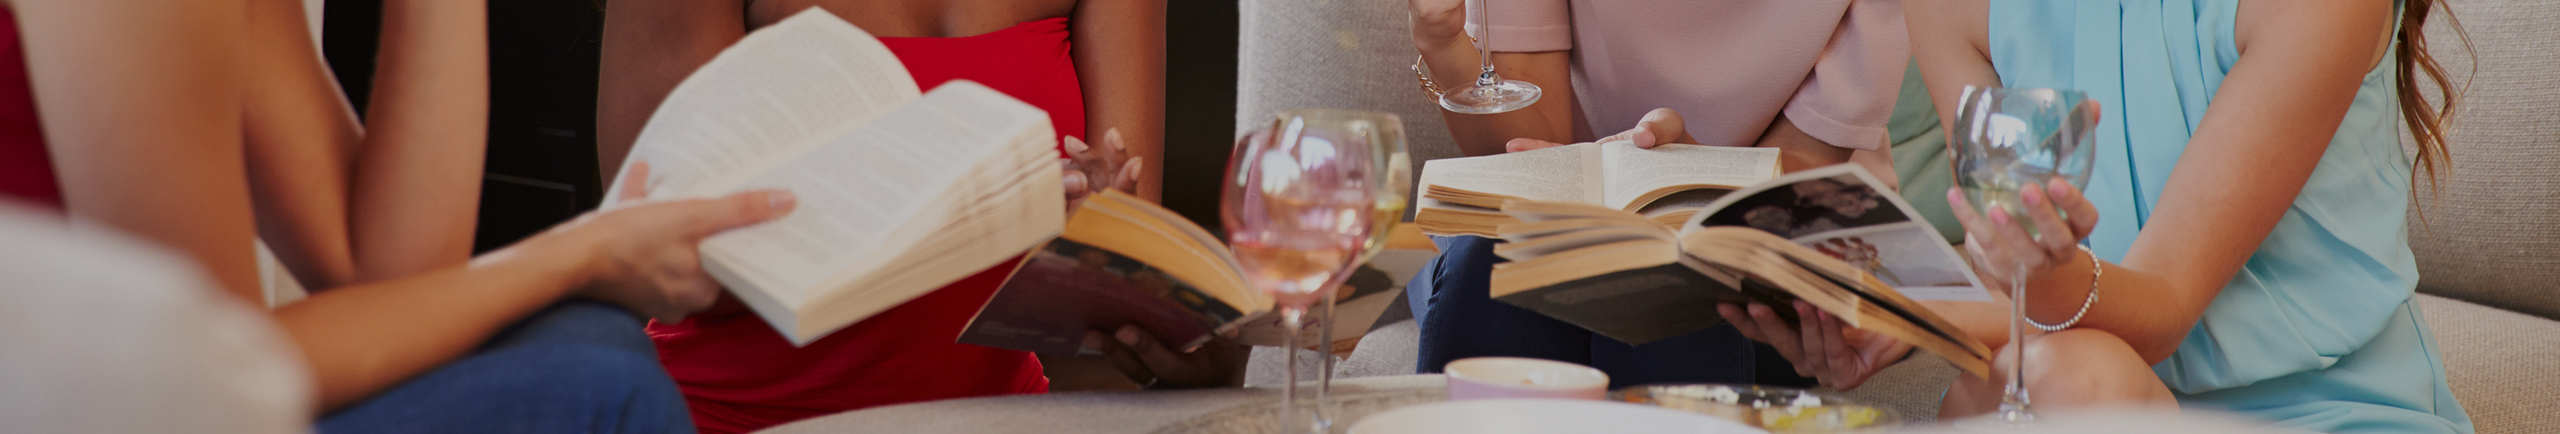 nvite Your Favorite Author to Join Your Next Book Club Meeting